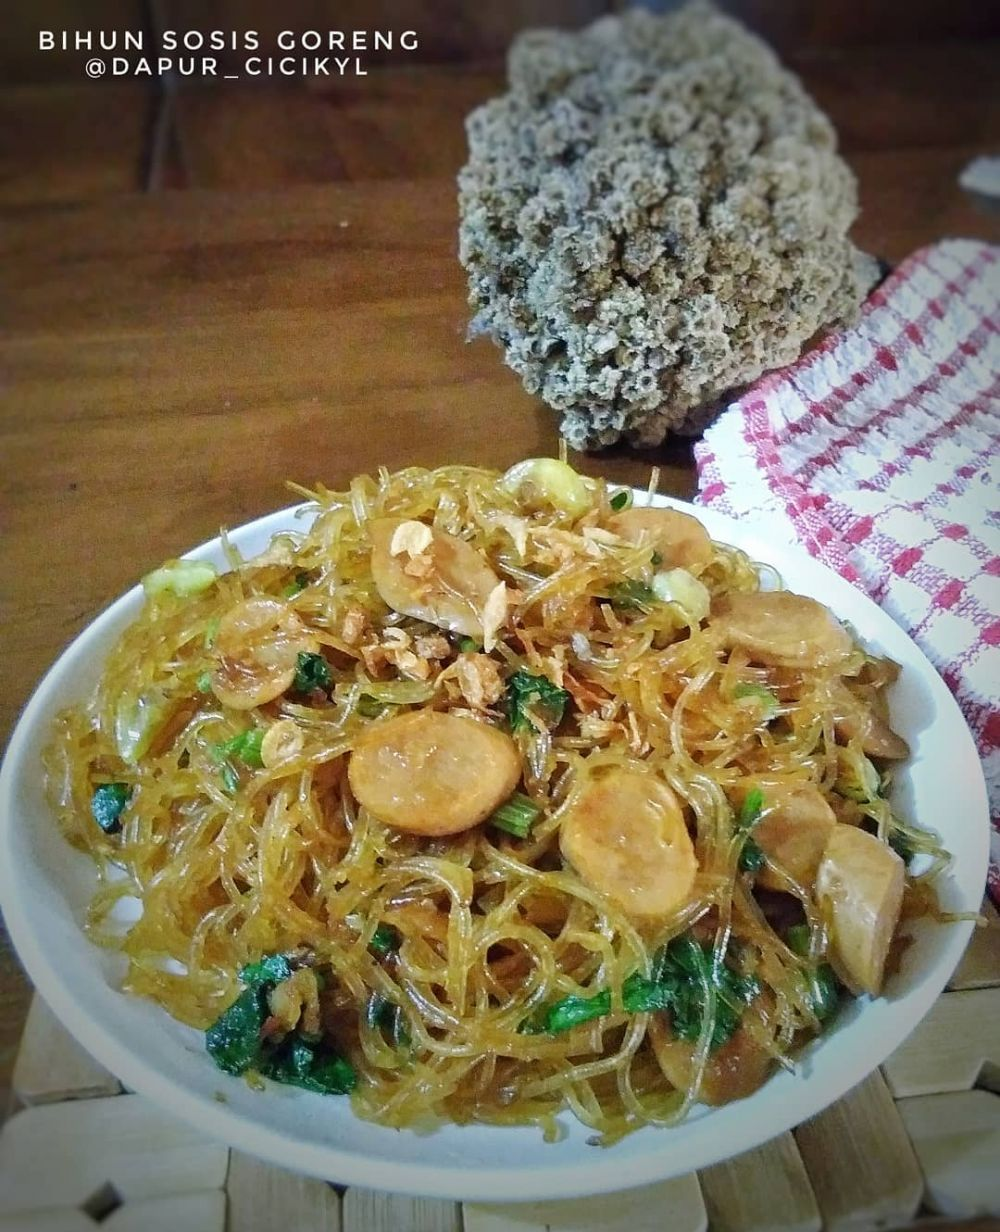 Resep Bihun Goreng C 2020 Brilio Net Instagram Yoanitasavit Instagram Purtirenkganis Indonesian Food 9 Resep Bihun Goren In 2020 Yummy Foodies Food Food Receipes